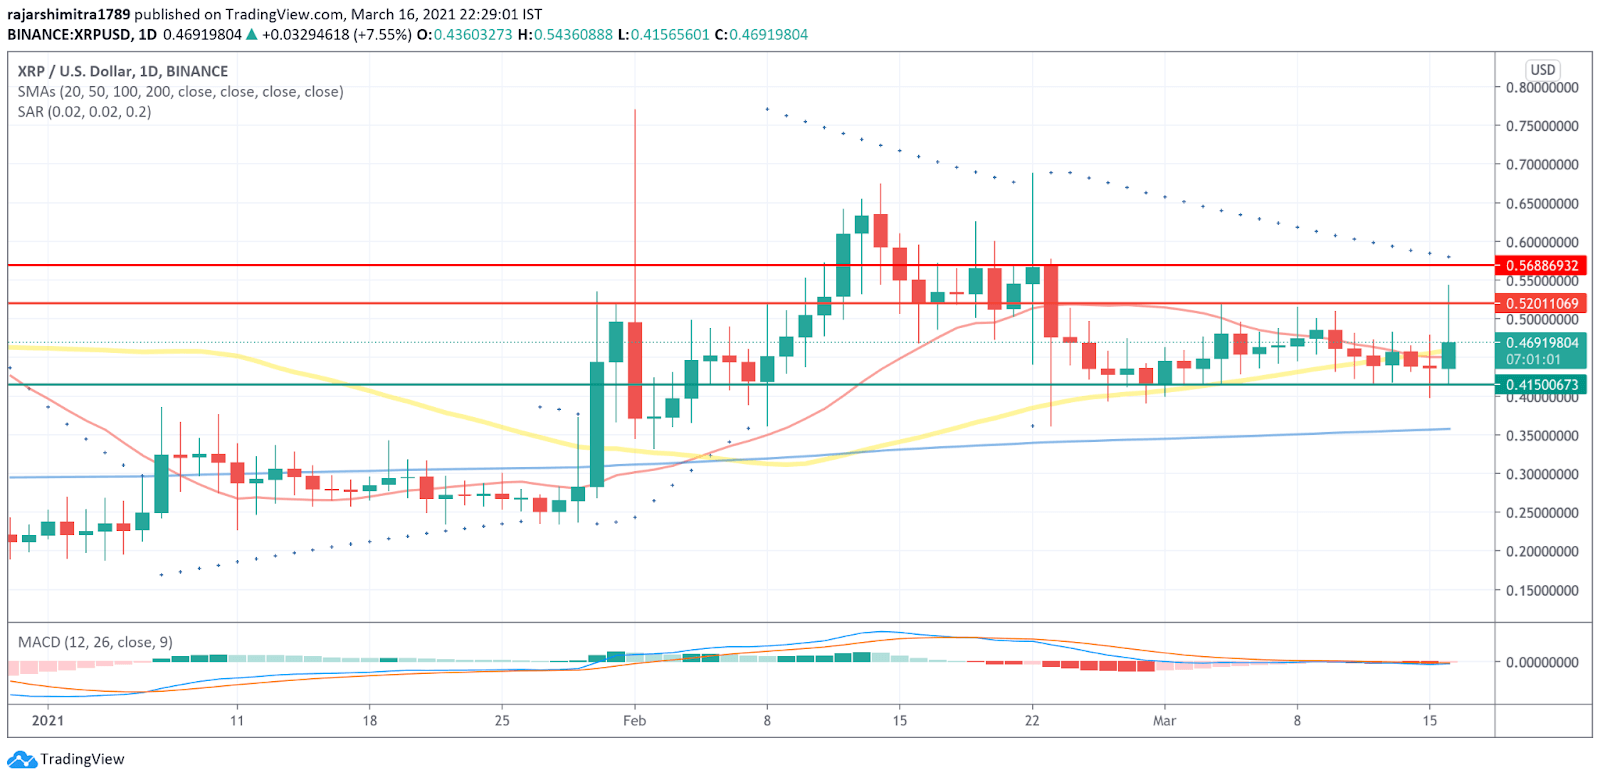 xrp/usd daily chart 031721